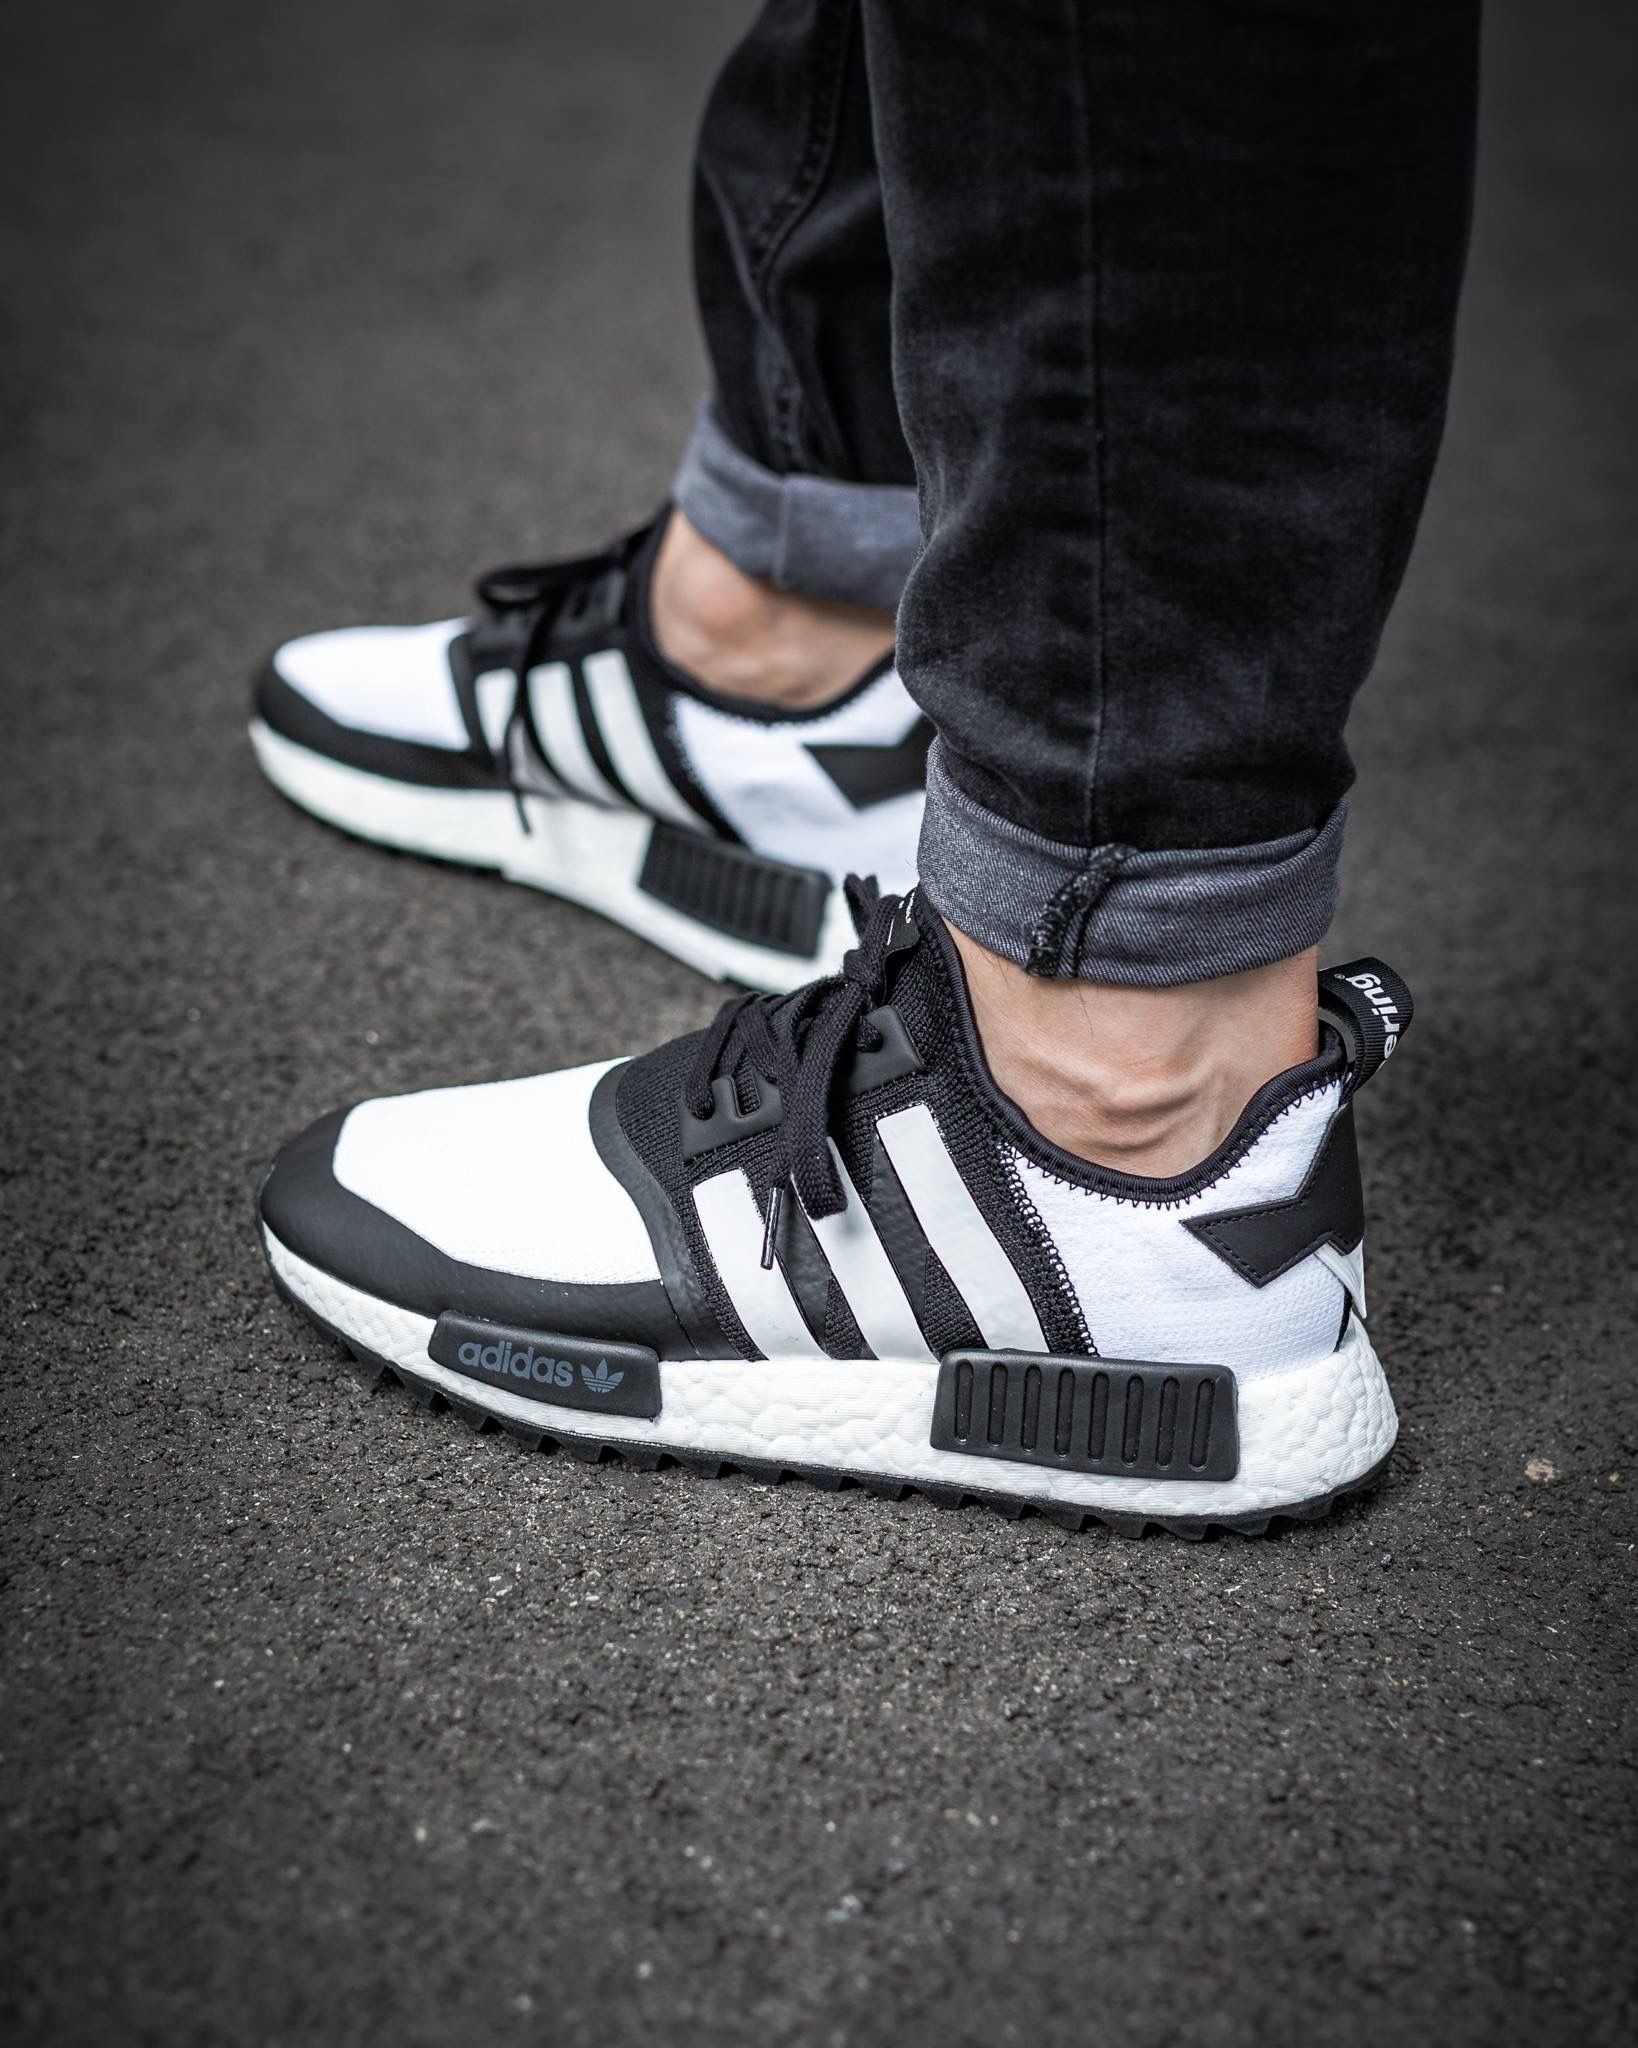 06 White Mountaineering x adidas NMD Trail Primeknit Core Black/Footwear  White eukicks